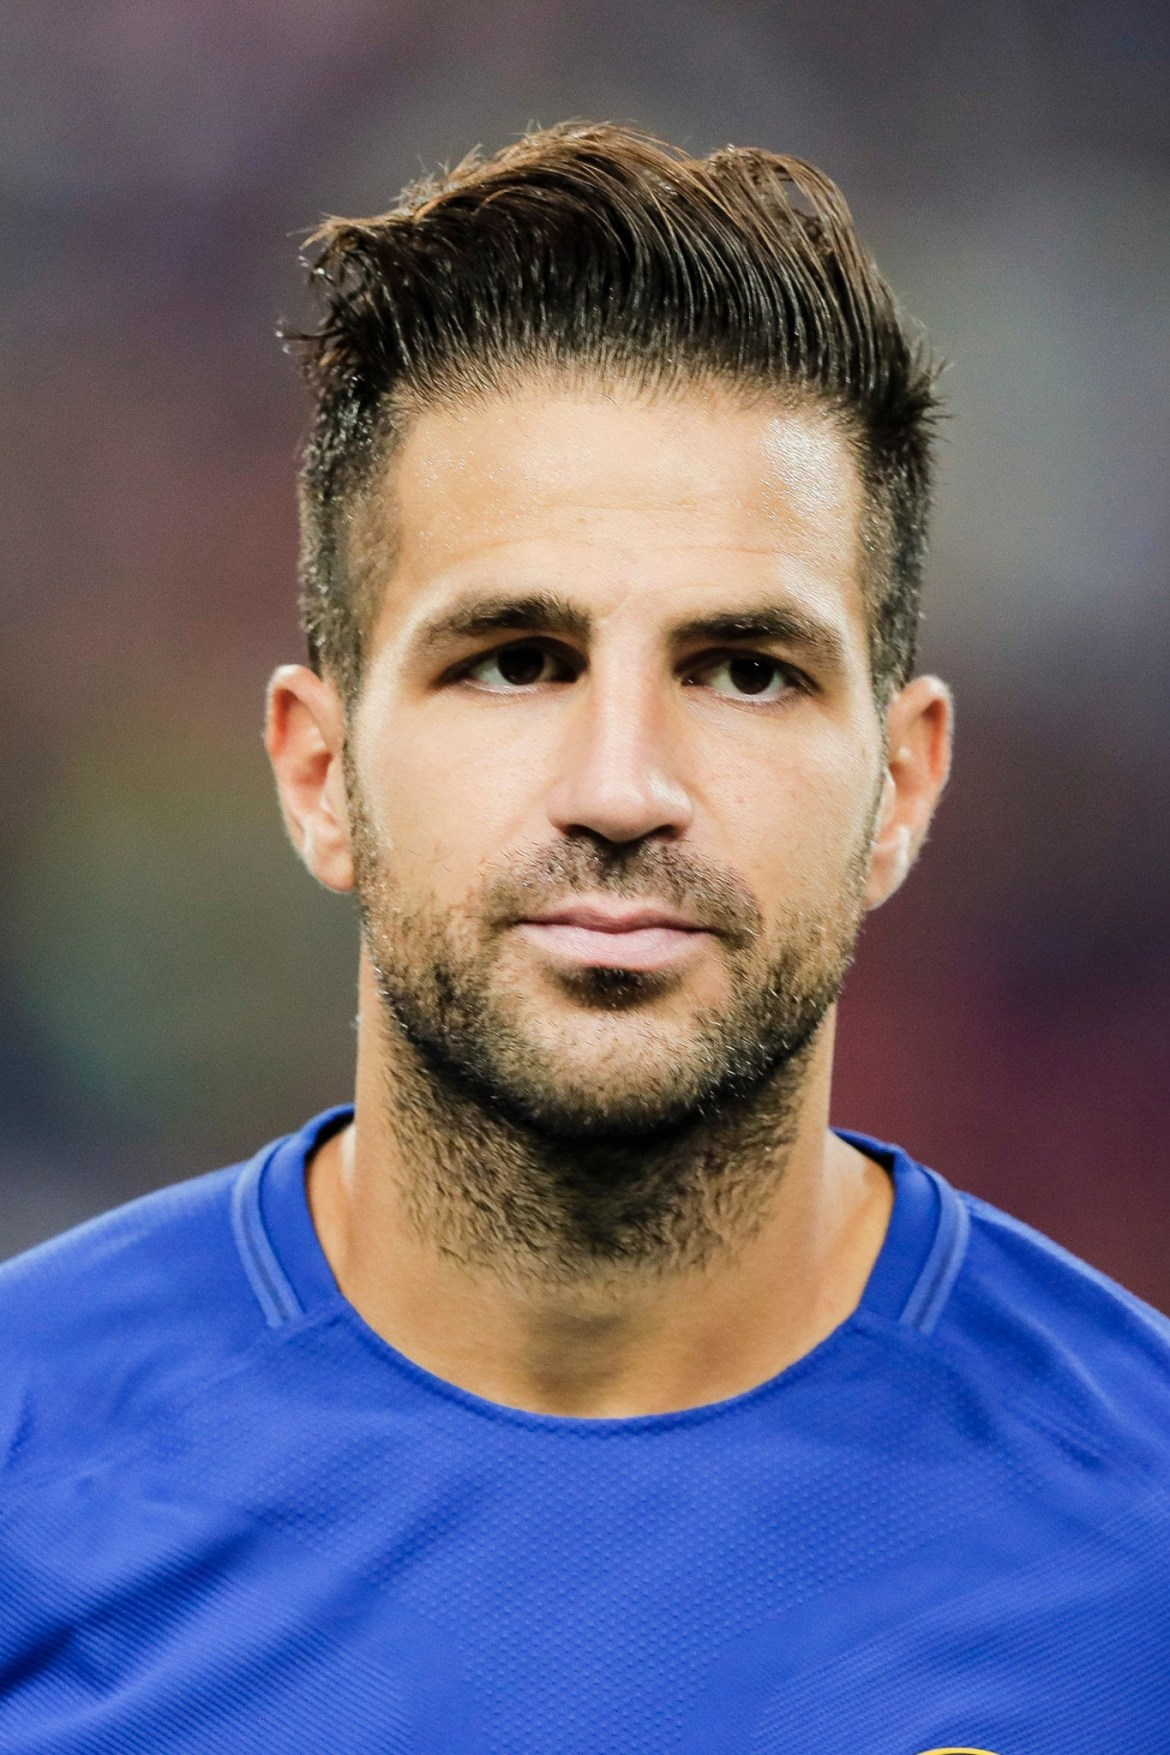 Michael Owen, Cesc Fabregas and Rio Ferdinand in Twitter debate after the ex-Liverpool star claimed scoring goals is harder than assisting